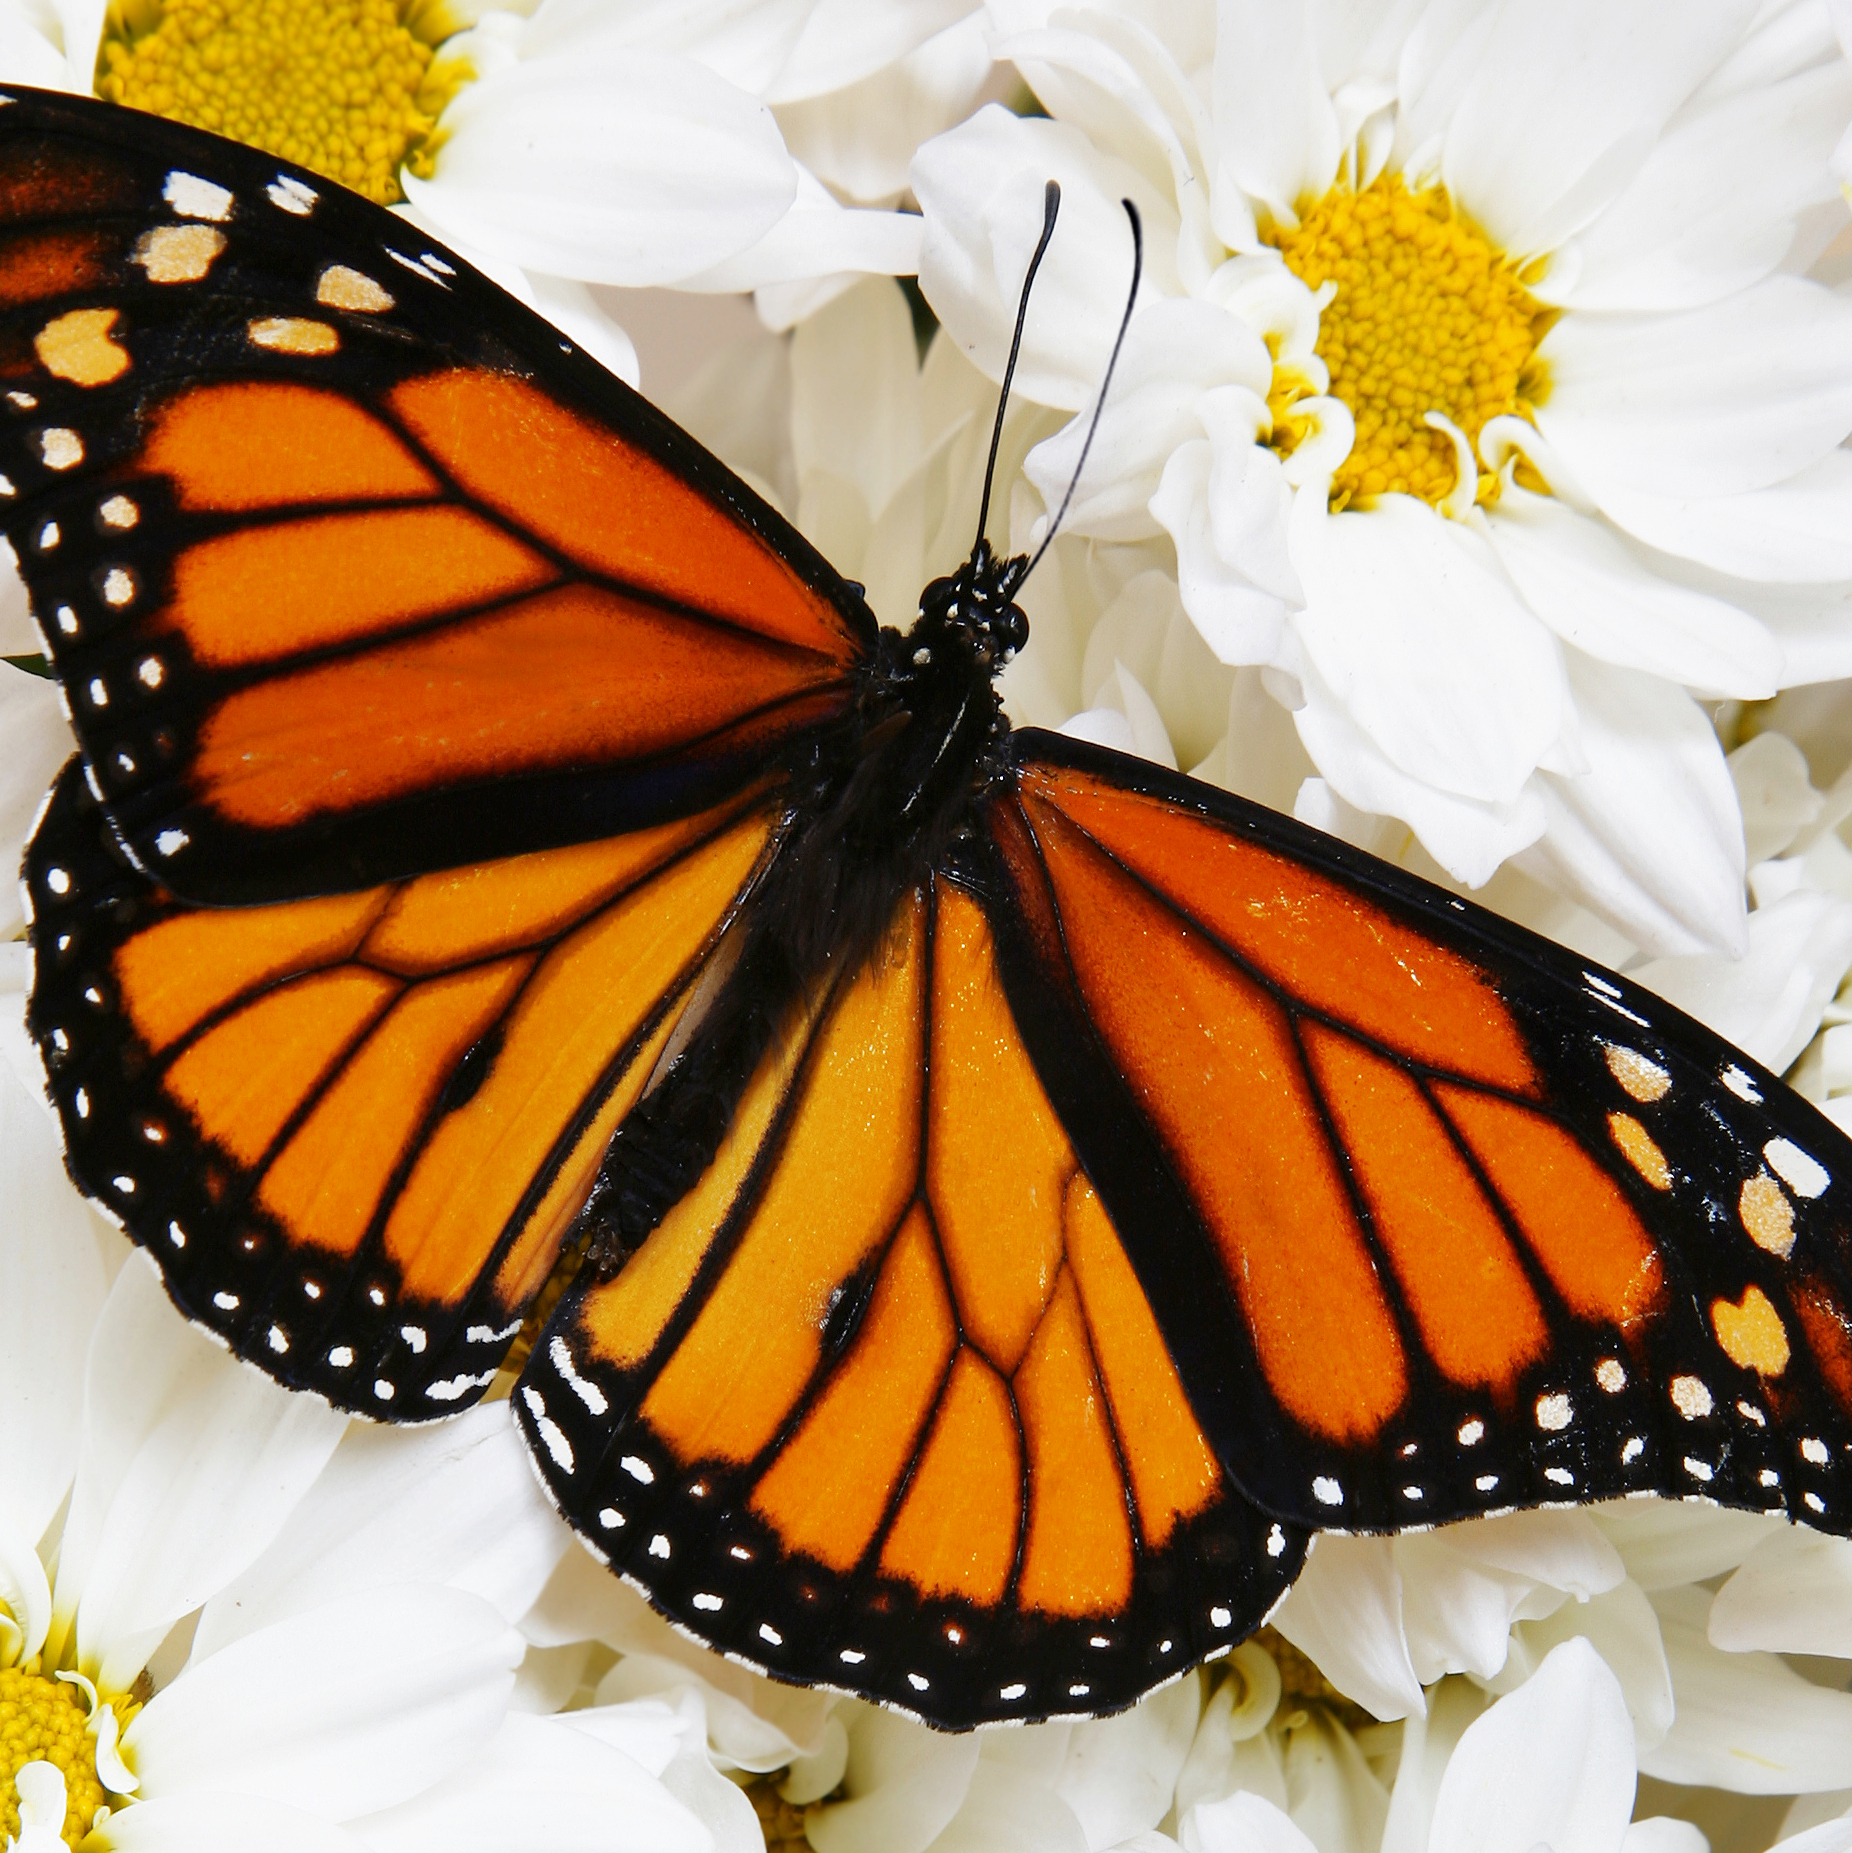 Monarch Butterflies by the Dozen - 12 Monarch Butterflies (choose your individual or mass release)